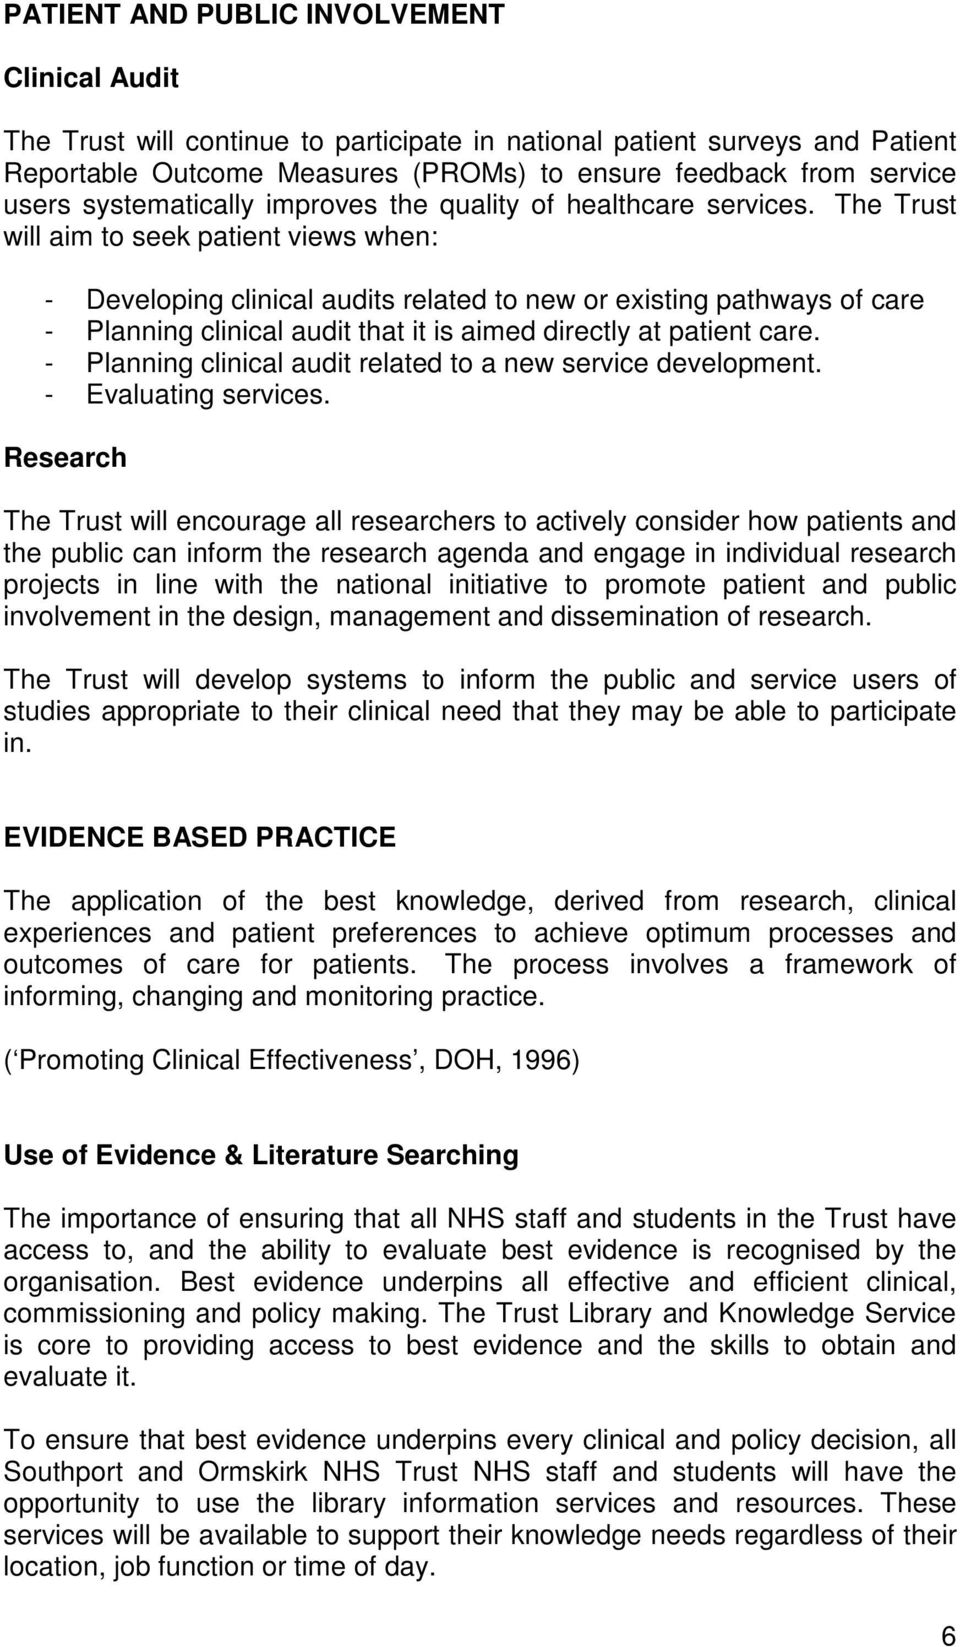 The Trust will aim to seek patient views when: - Developing clinical audits related to new or existing pathways of care - Planning clinical audit that it is aimed directly at patient care.